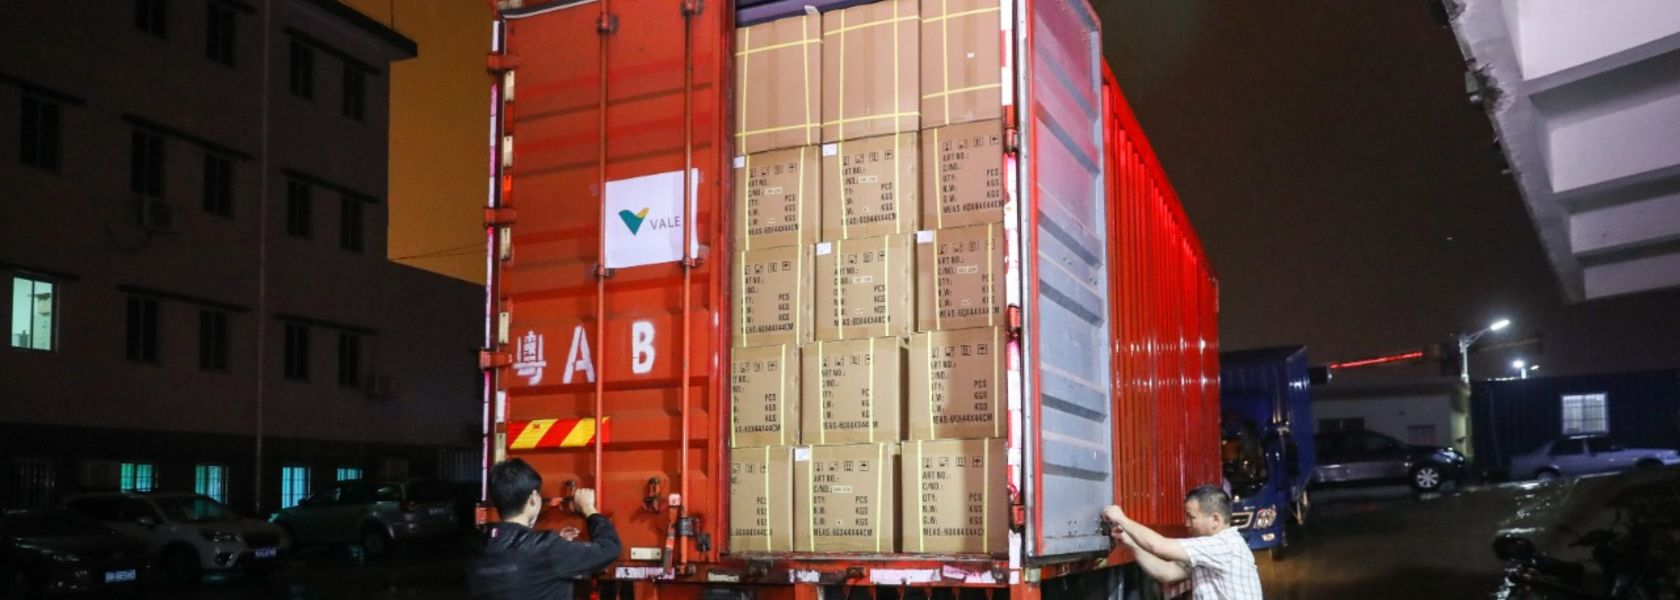 Vale offers aid package for suppliers